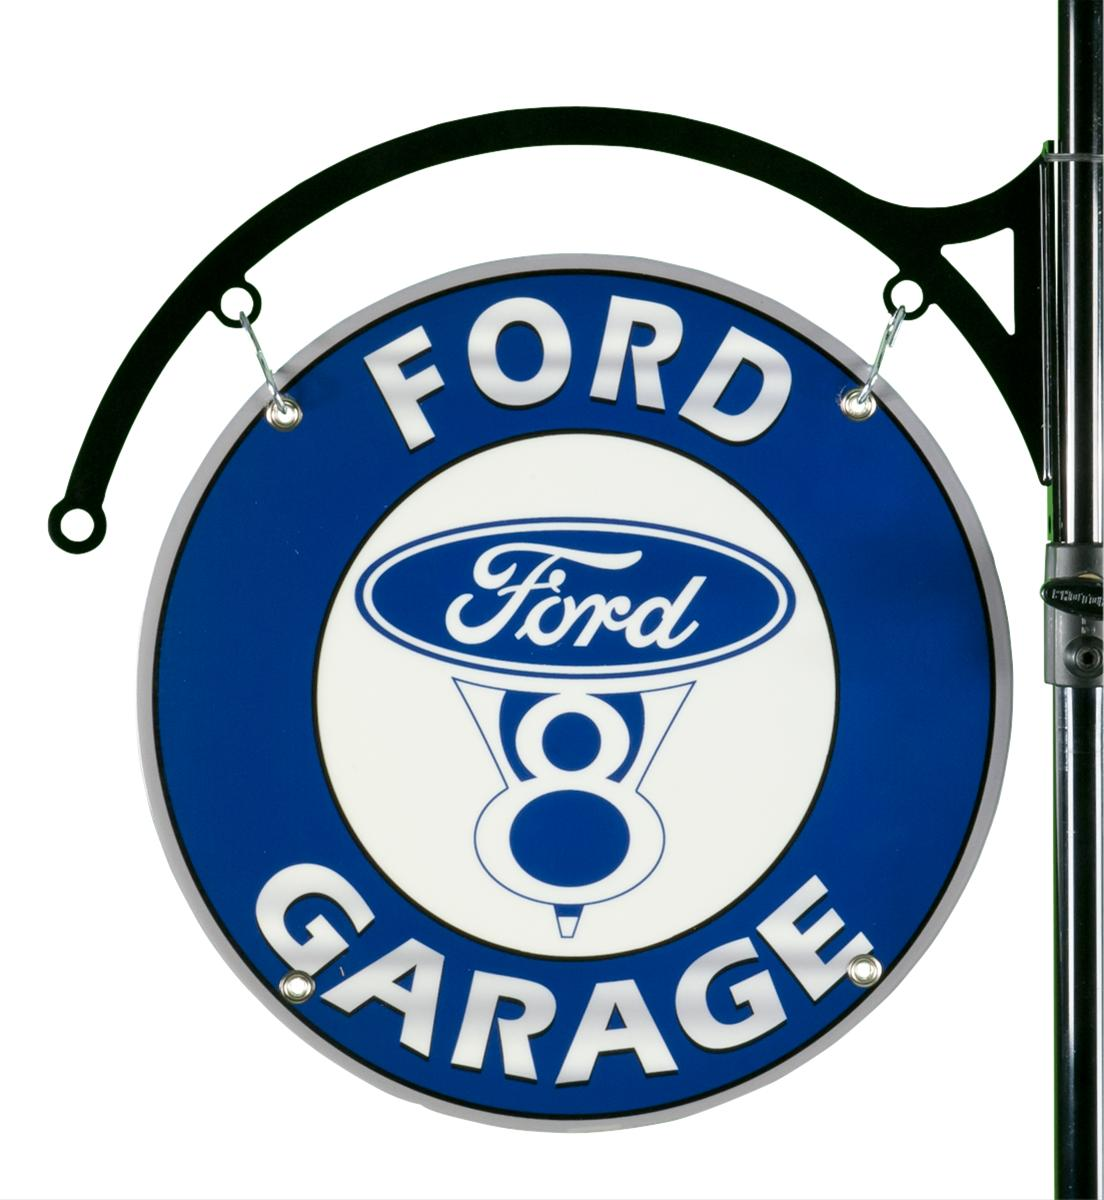 Ford Garage Signs : Ford garage double sided sign fv ds free shipping on